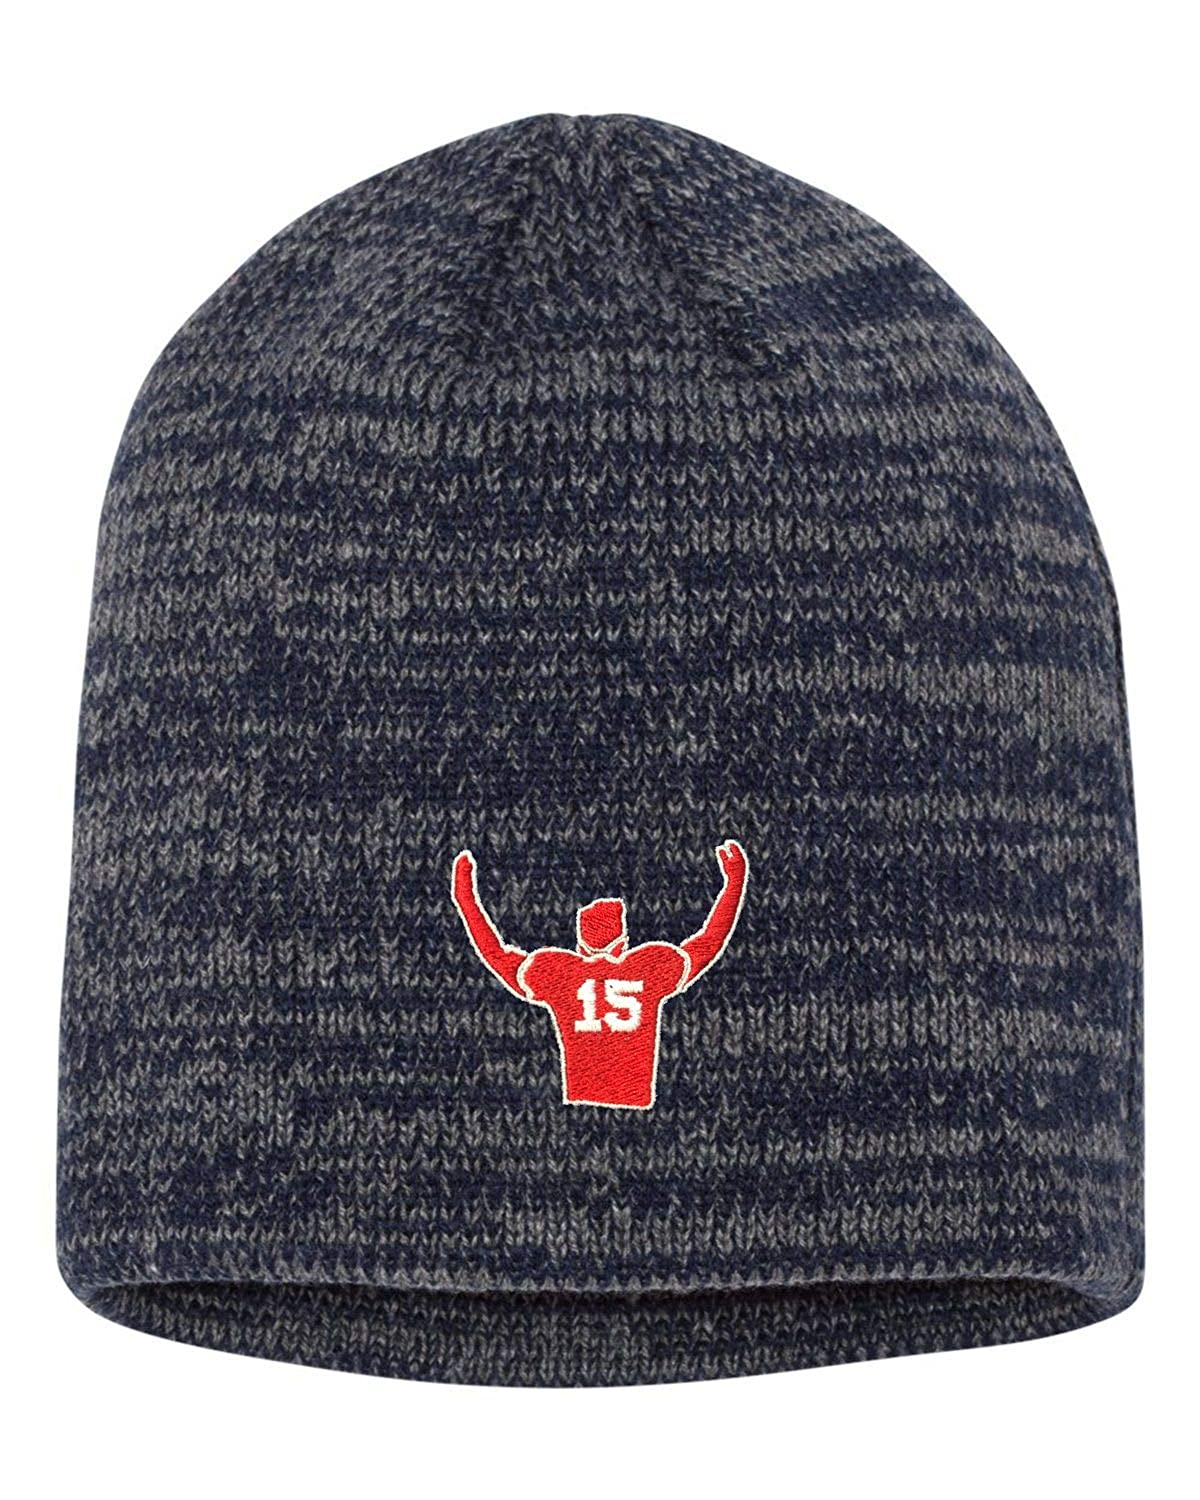 Go All Out Adult Mahomes Outline Embroidered Marled Knit Beanie Cap